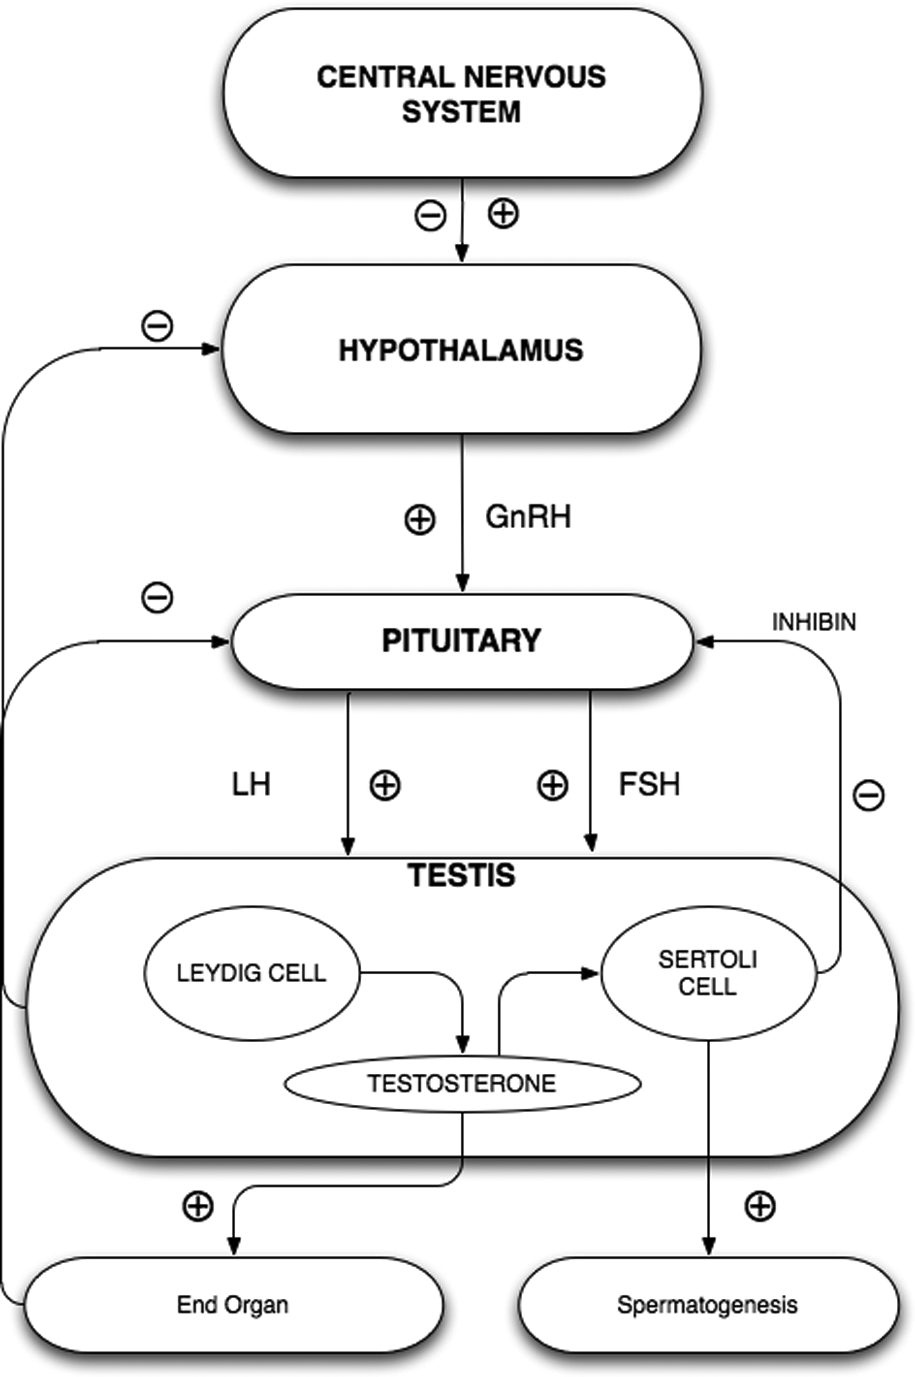 Functional anatomy of the hypothalamic–pituitary–gonadal